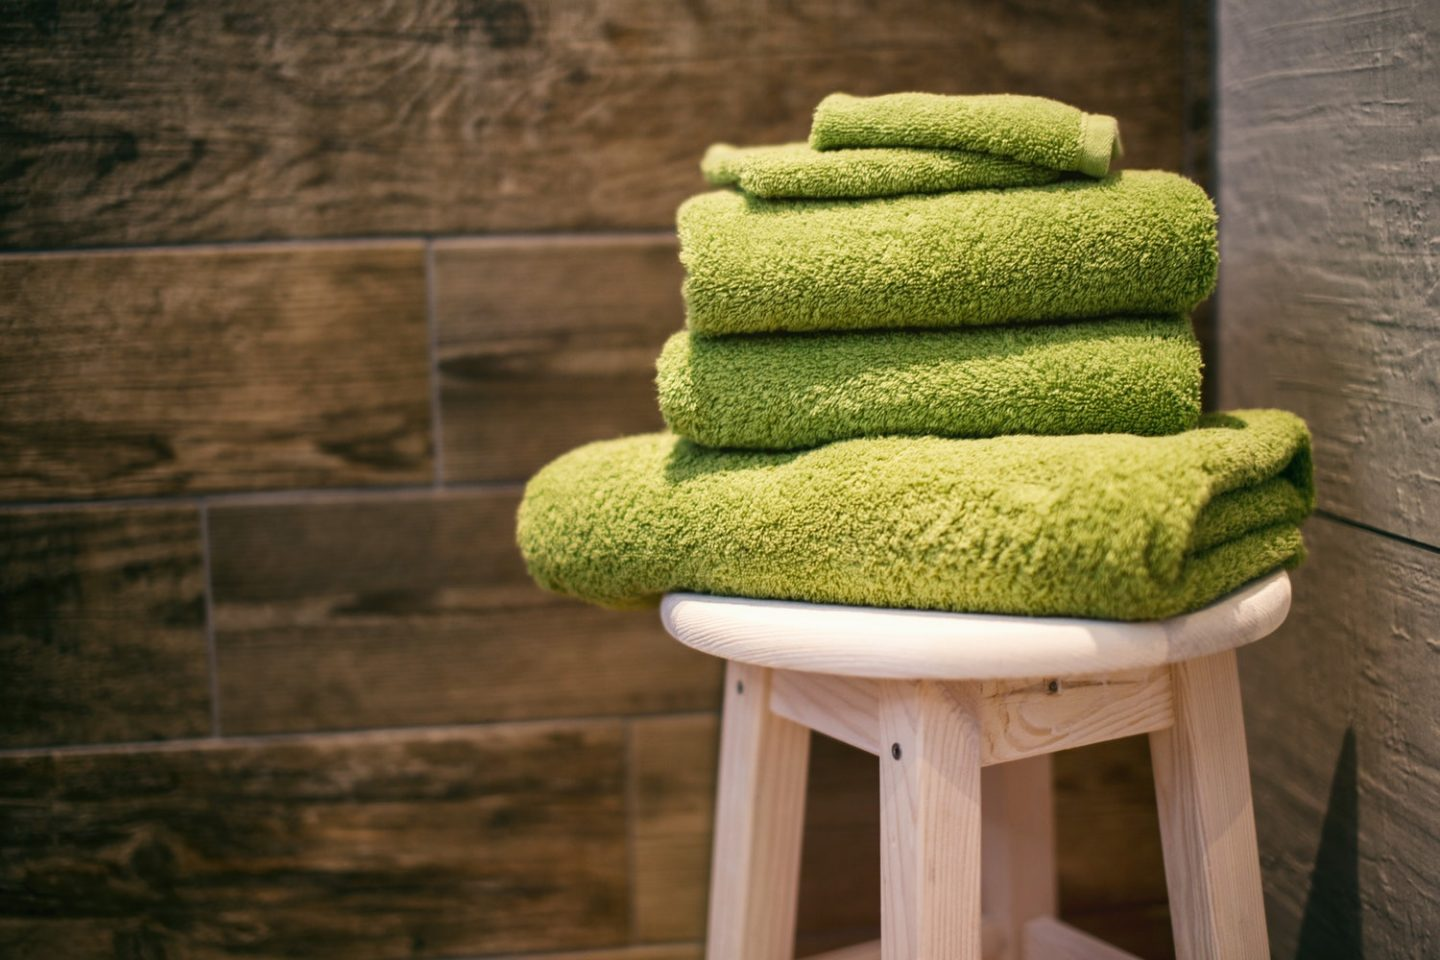 Designing a Bathroom That's Easy to Clean